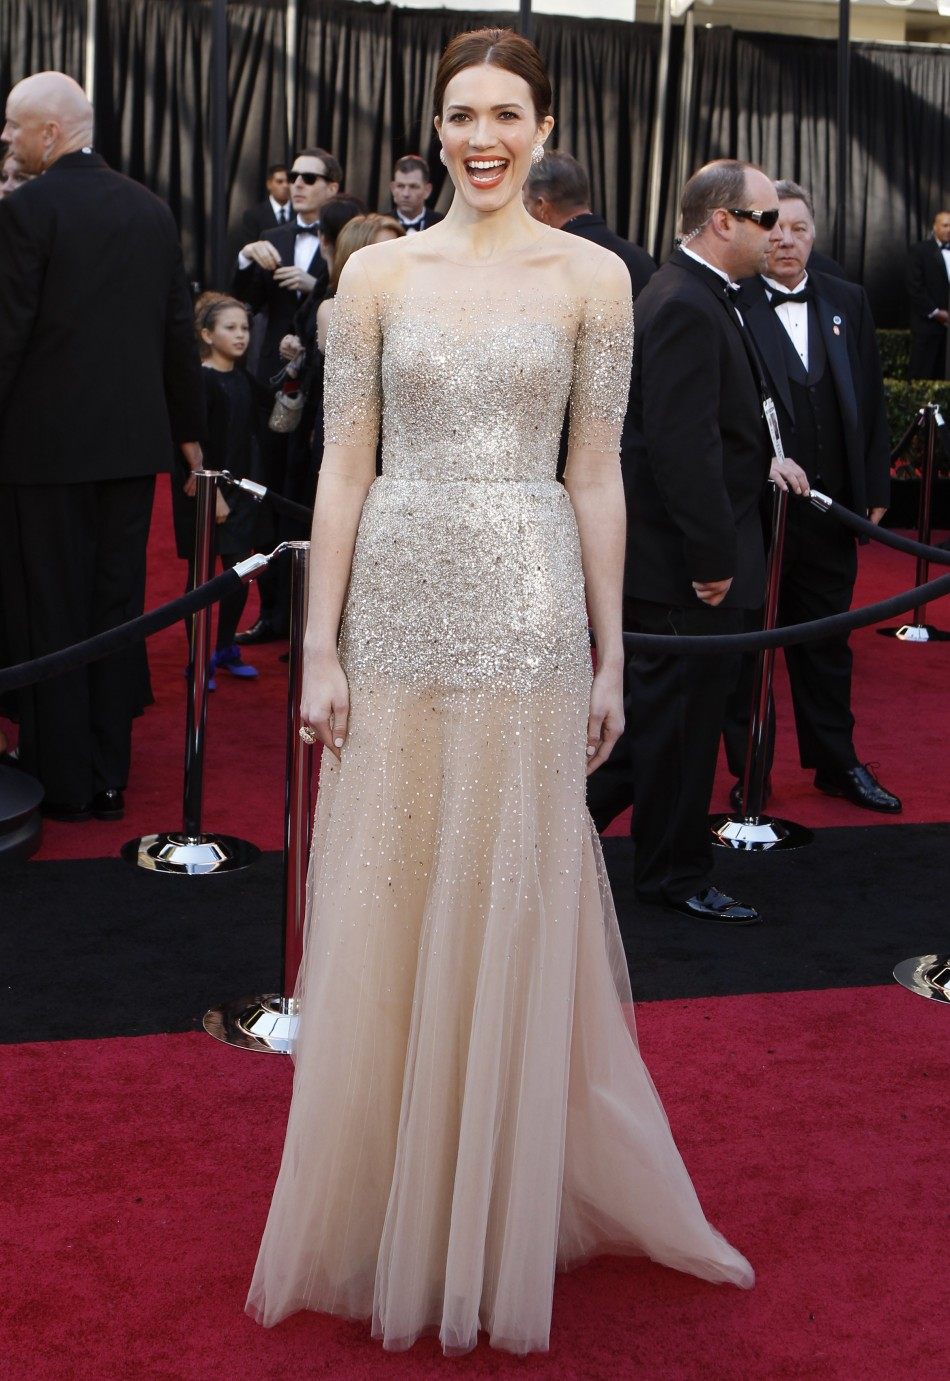 a2a220e2be03e Reuters Singer and actress Mandy Moore arrives at the 83rd Academy Awards  in Hollywood, California,